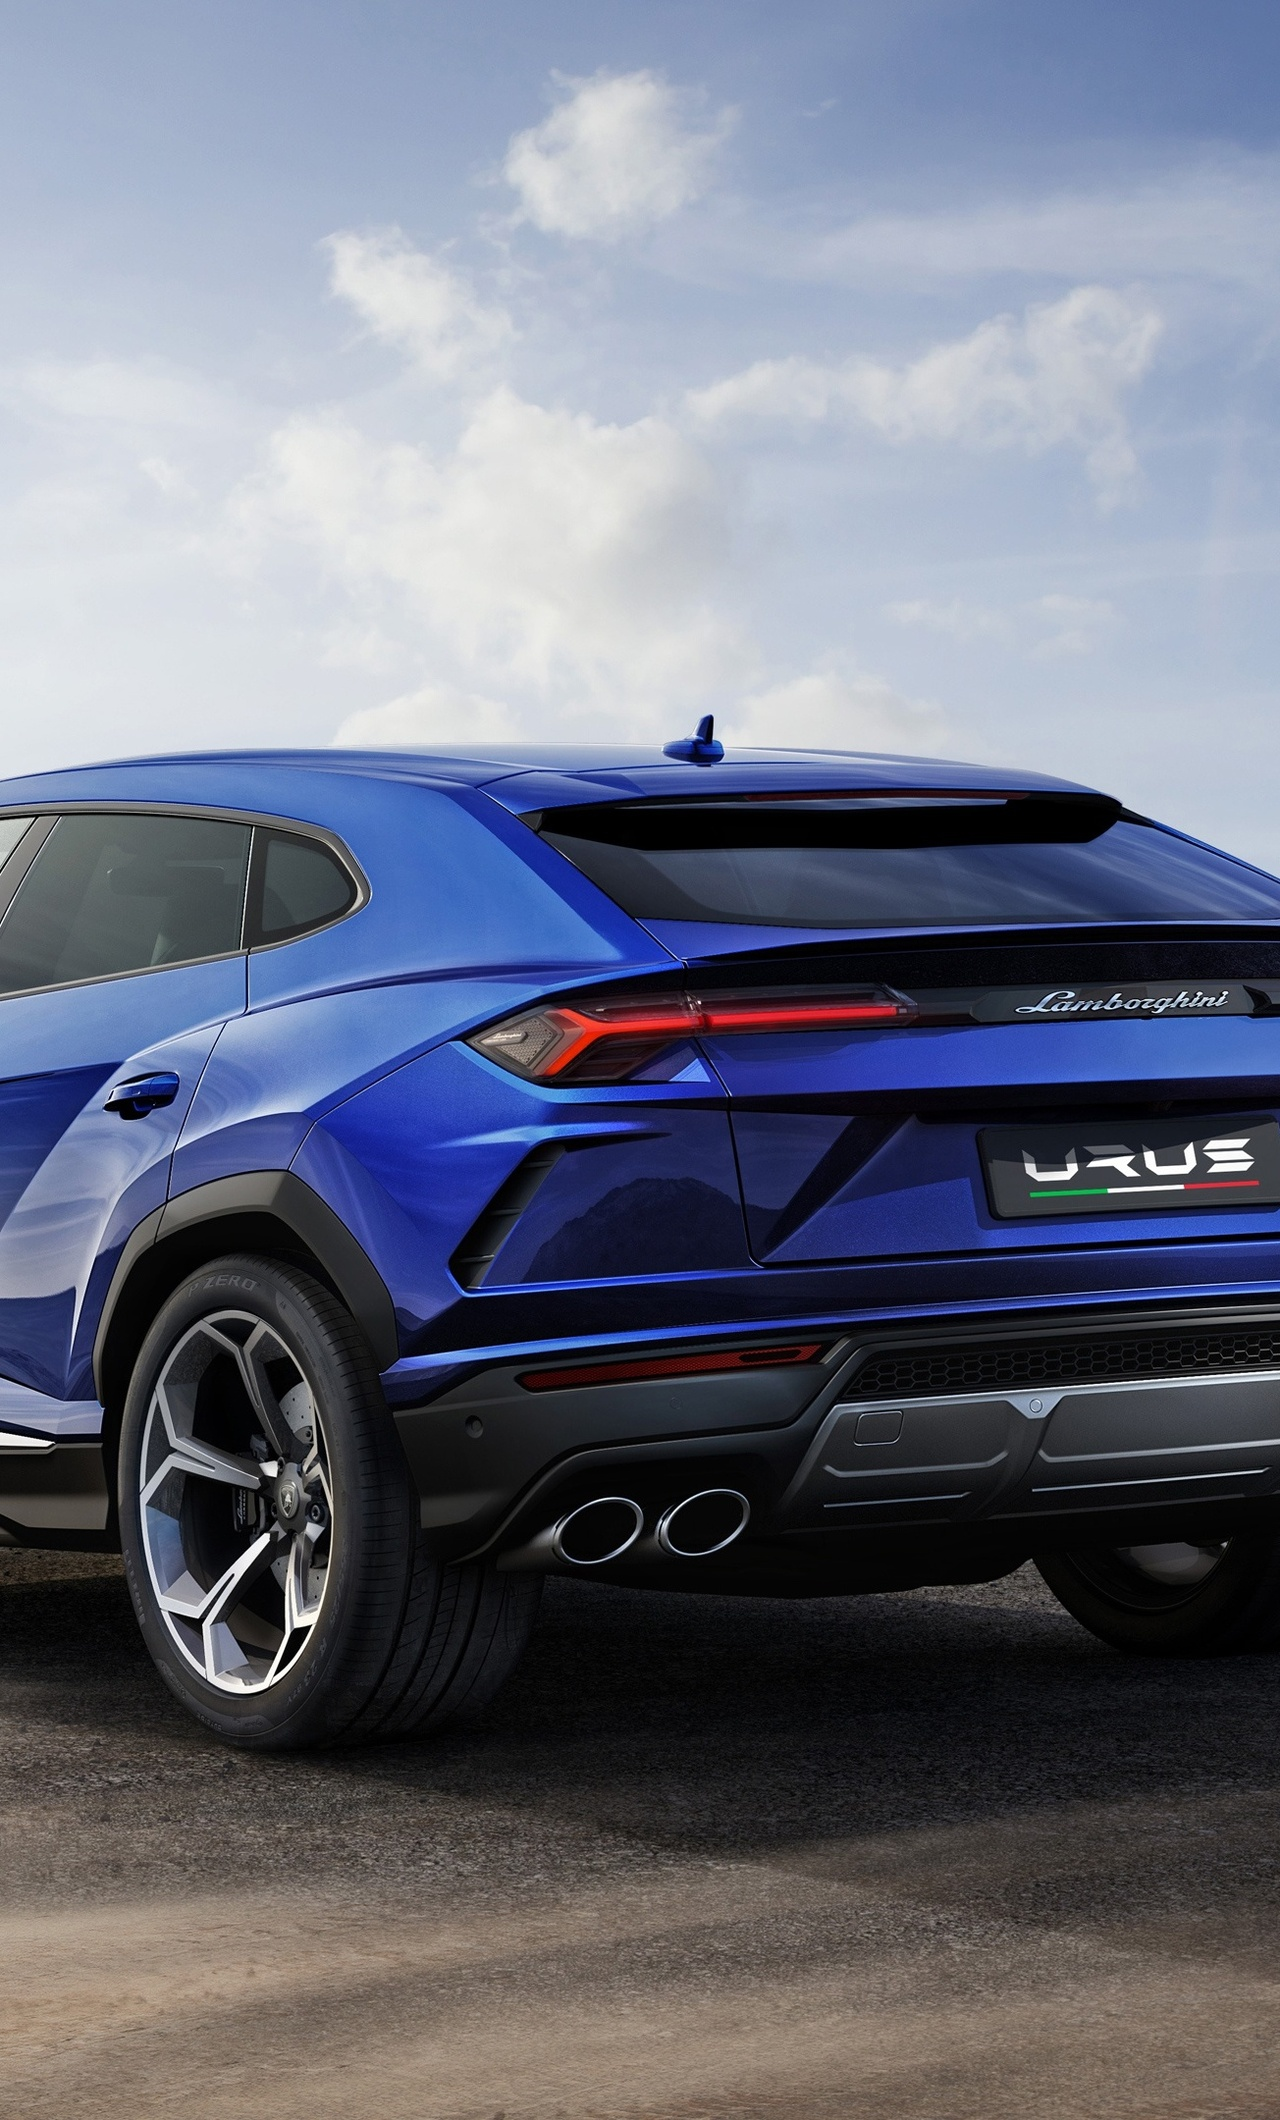 1280x2120 lamborghini urus blue color 4k iphone 6+ hd 4k wallpapers